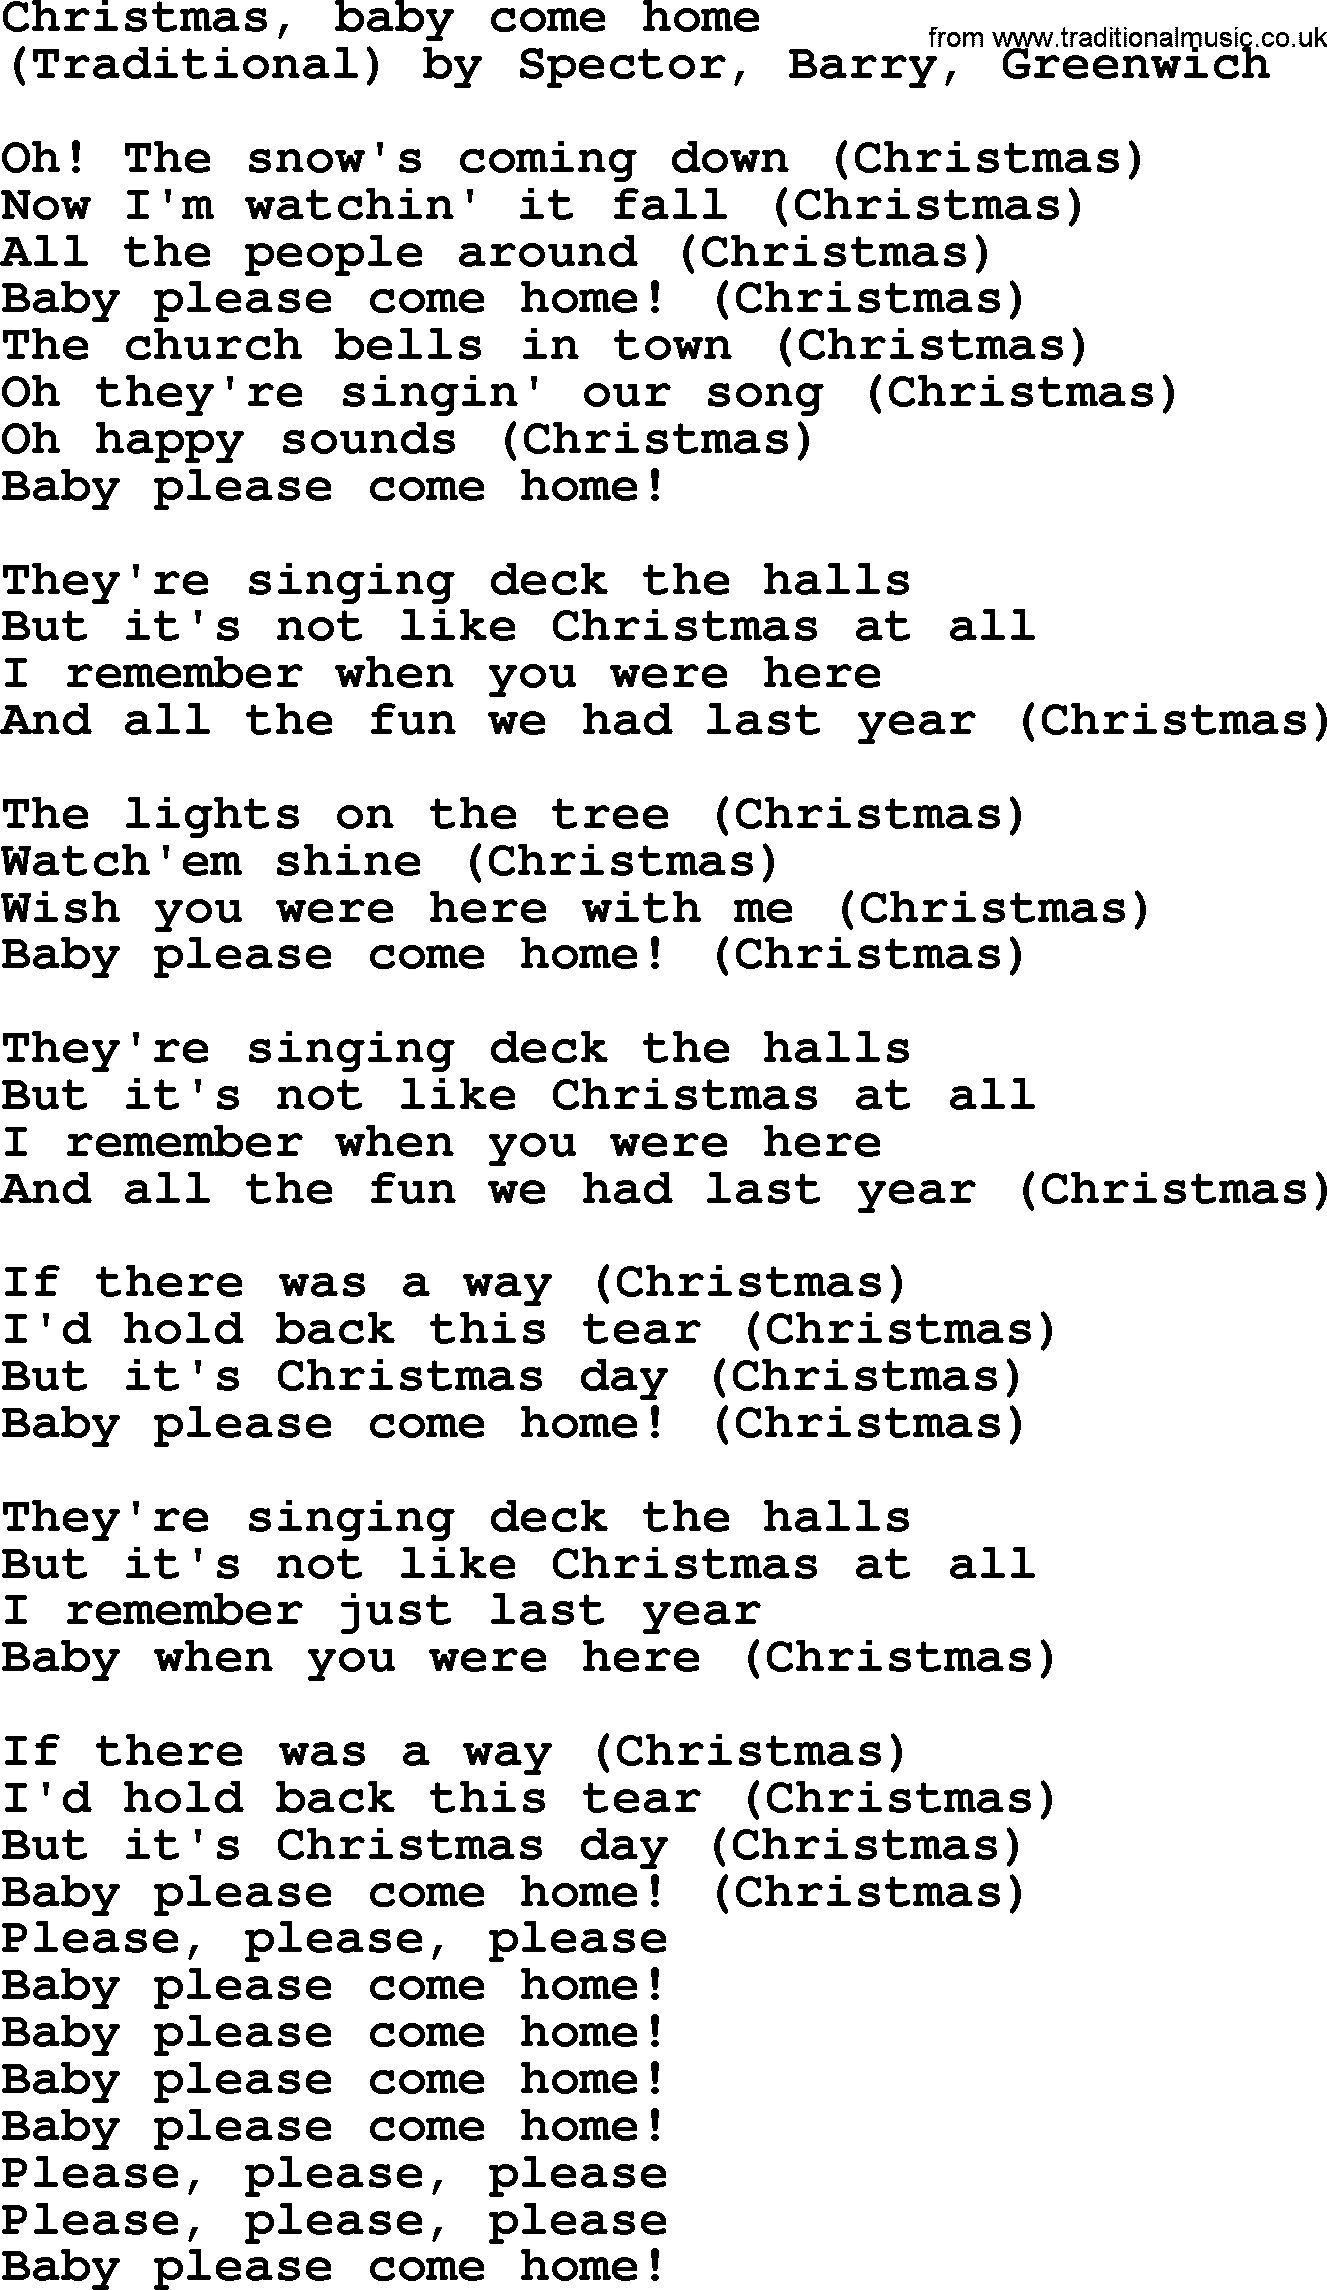 Bruce Springsteen Song Christmas Baby Come Home Lyrics